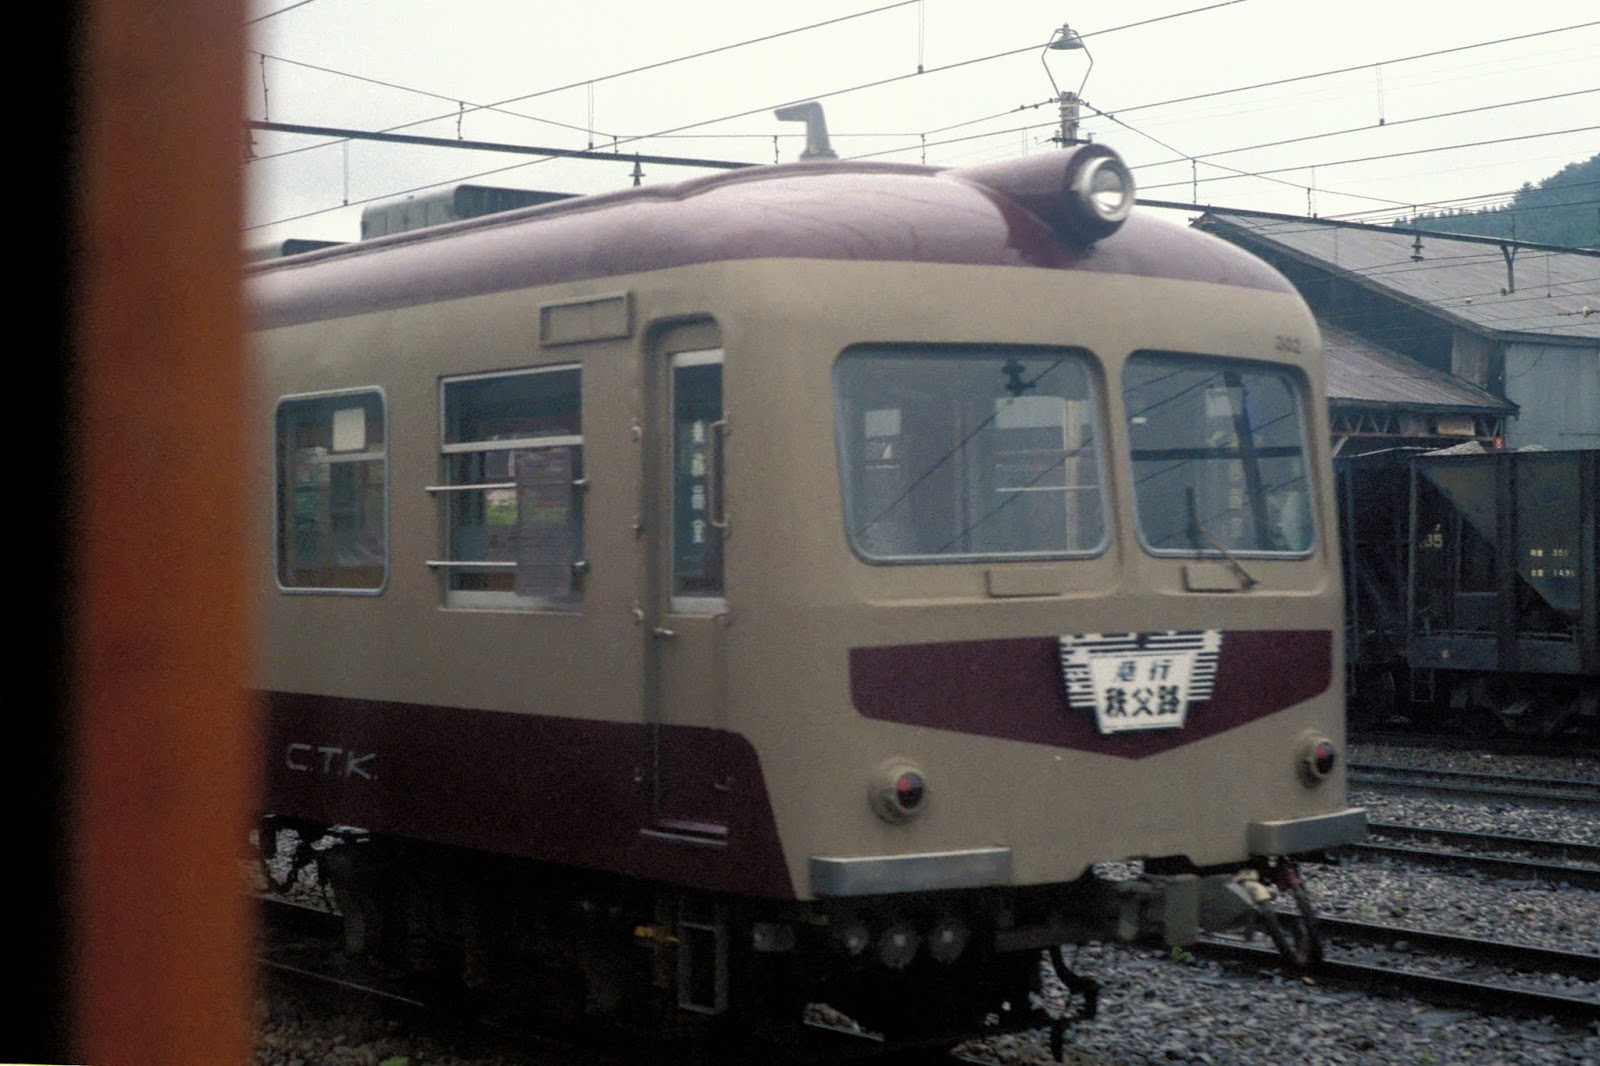 CTK_series300_301F_Deha302_at_Kagemori_stn_Aug_1986